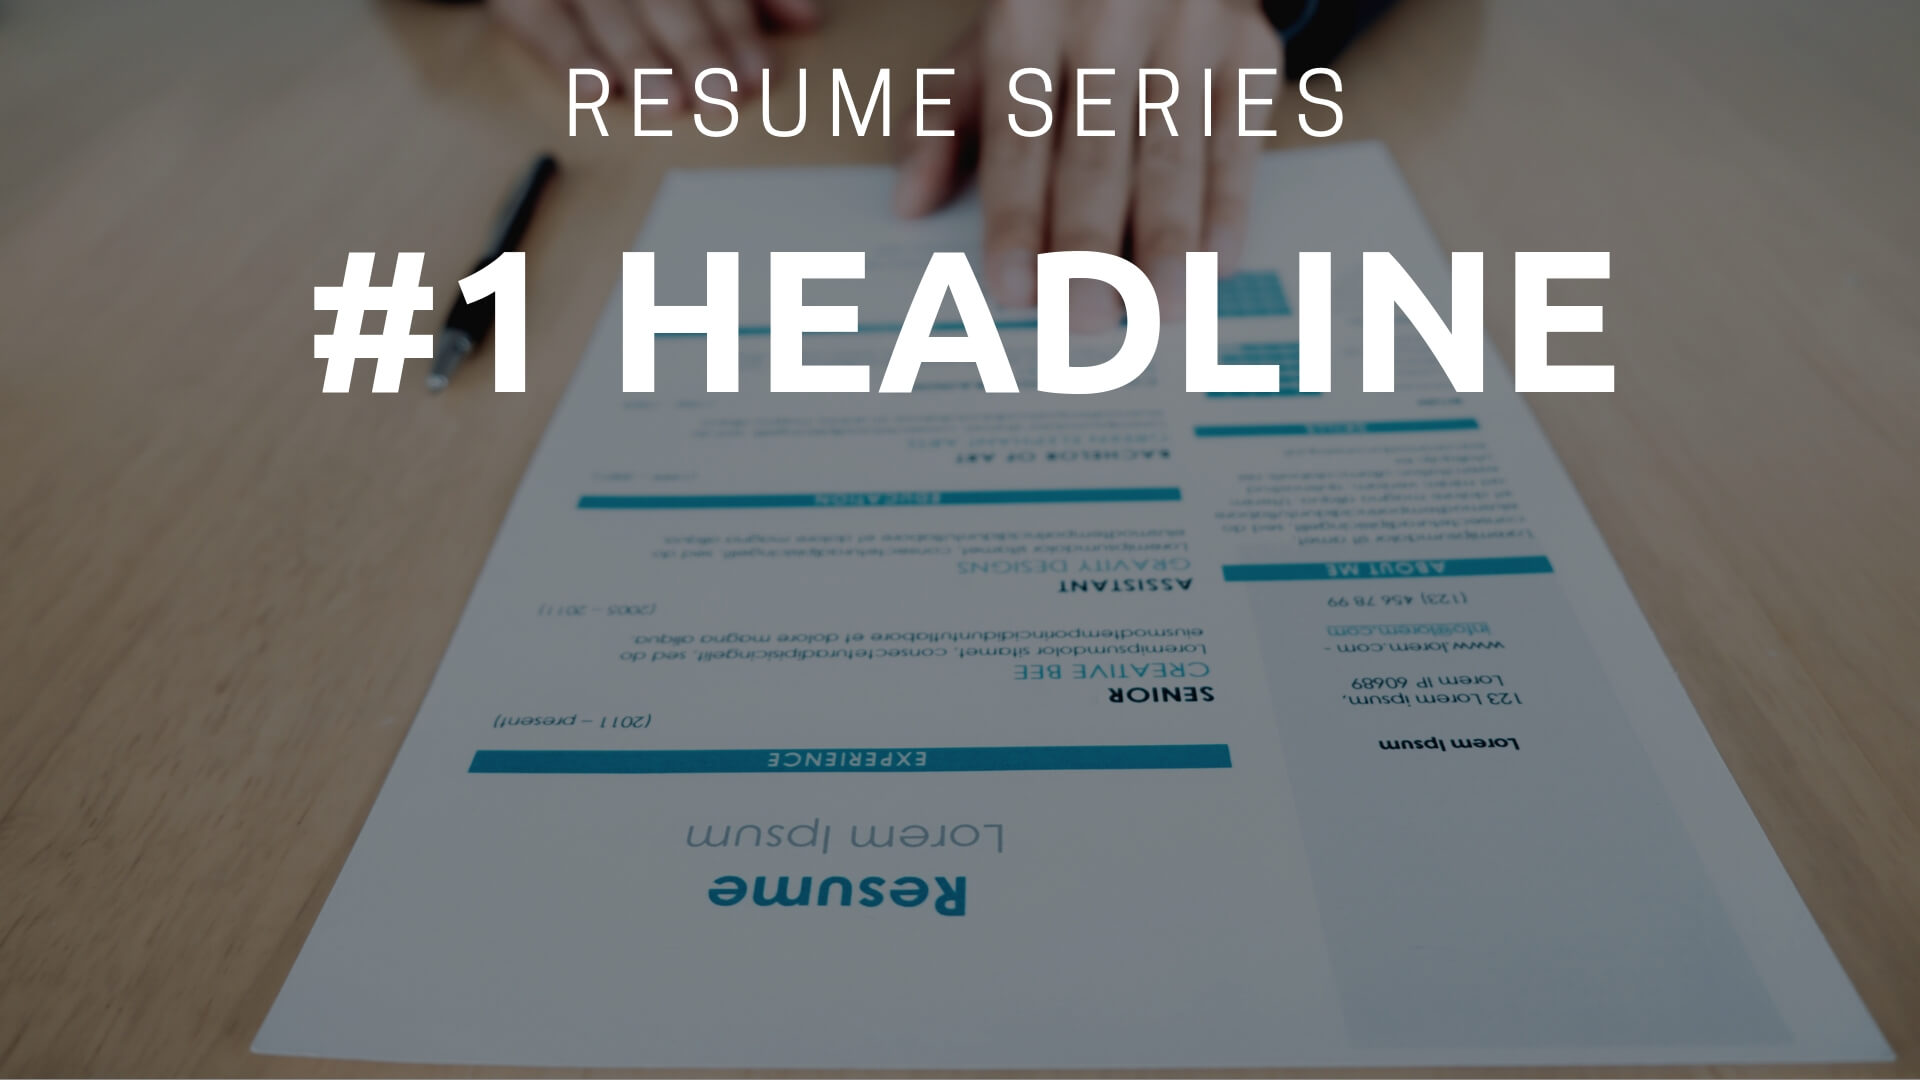 5 quick tips to craft a powerful resume headline